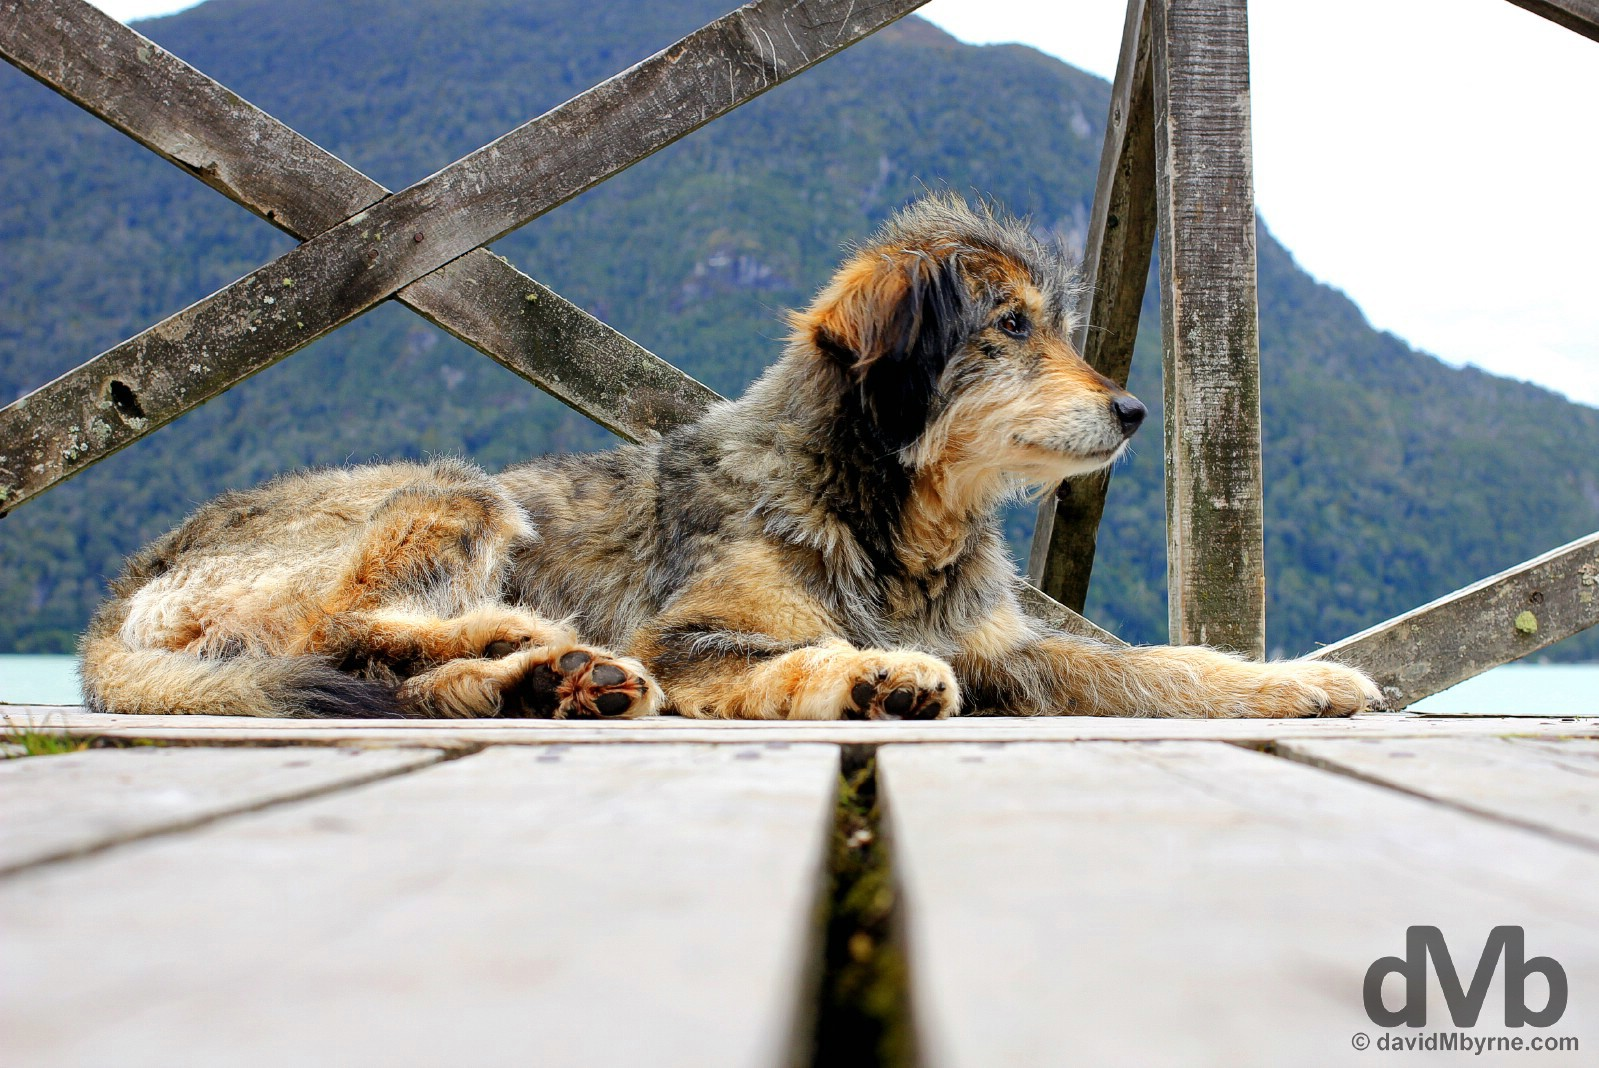 A shaggy dog resting on the boardwalks of Caleta Tortel in Aysen, Chile. October 29, 2015.